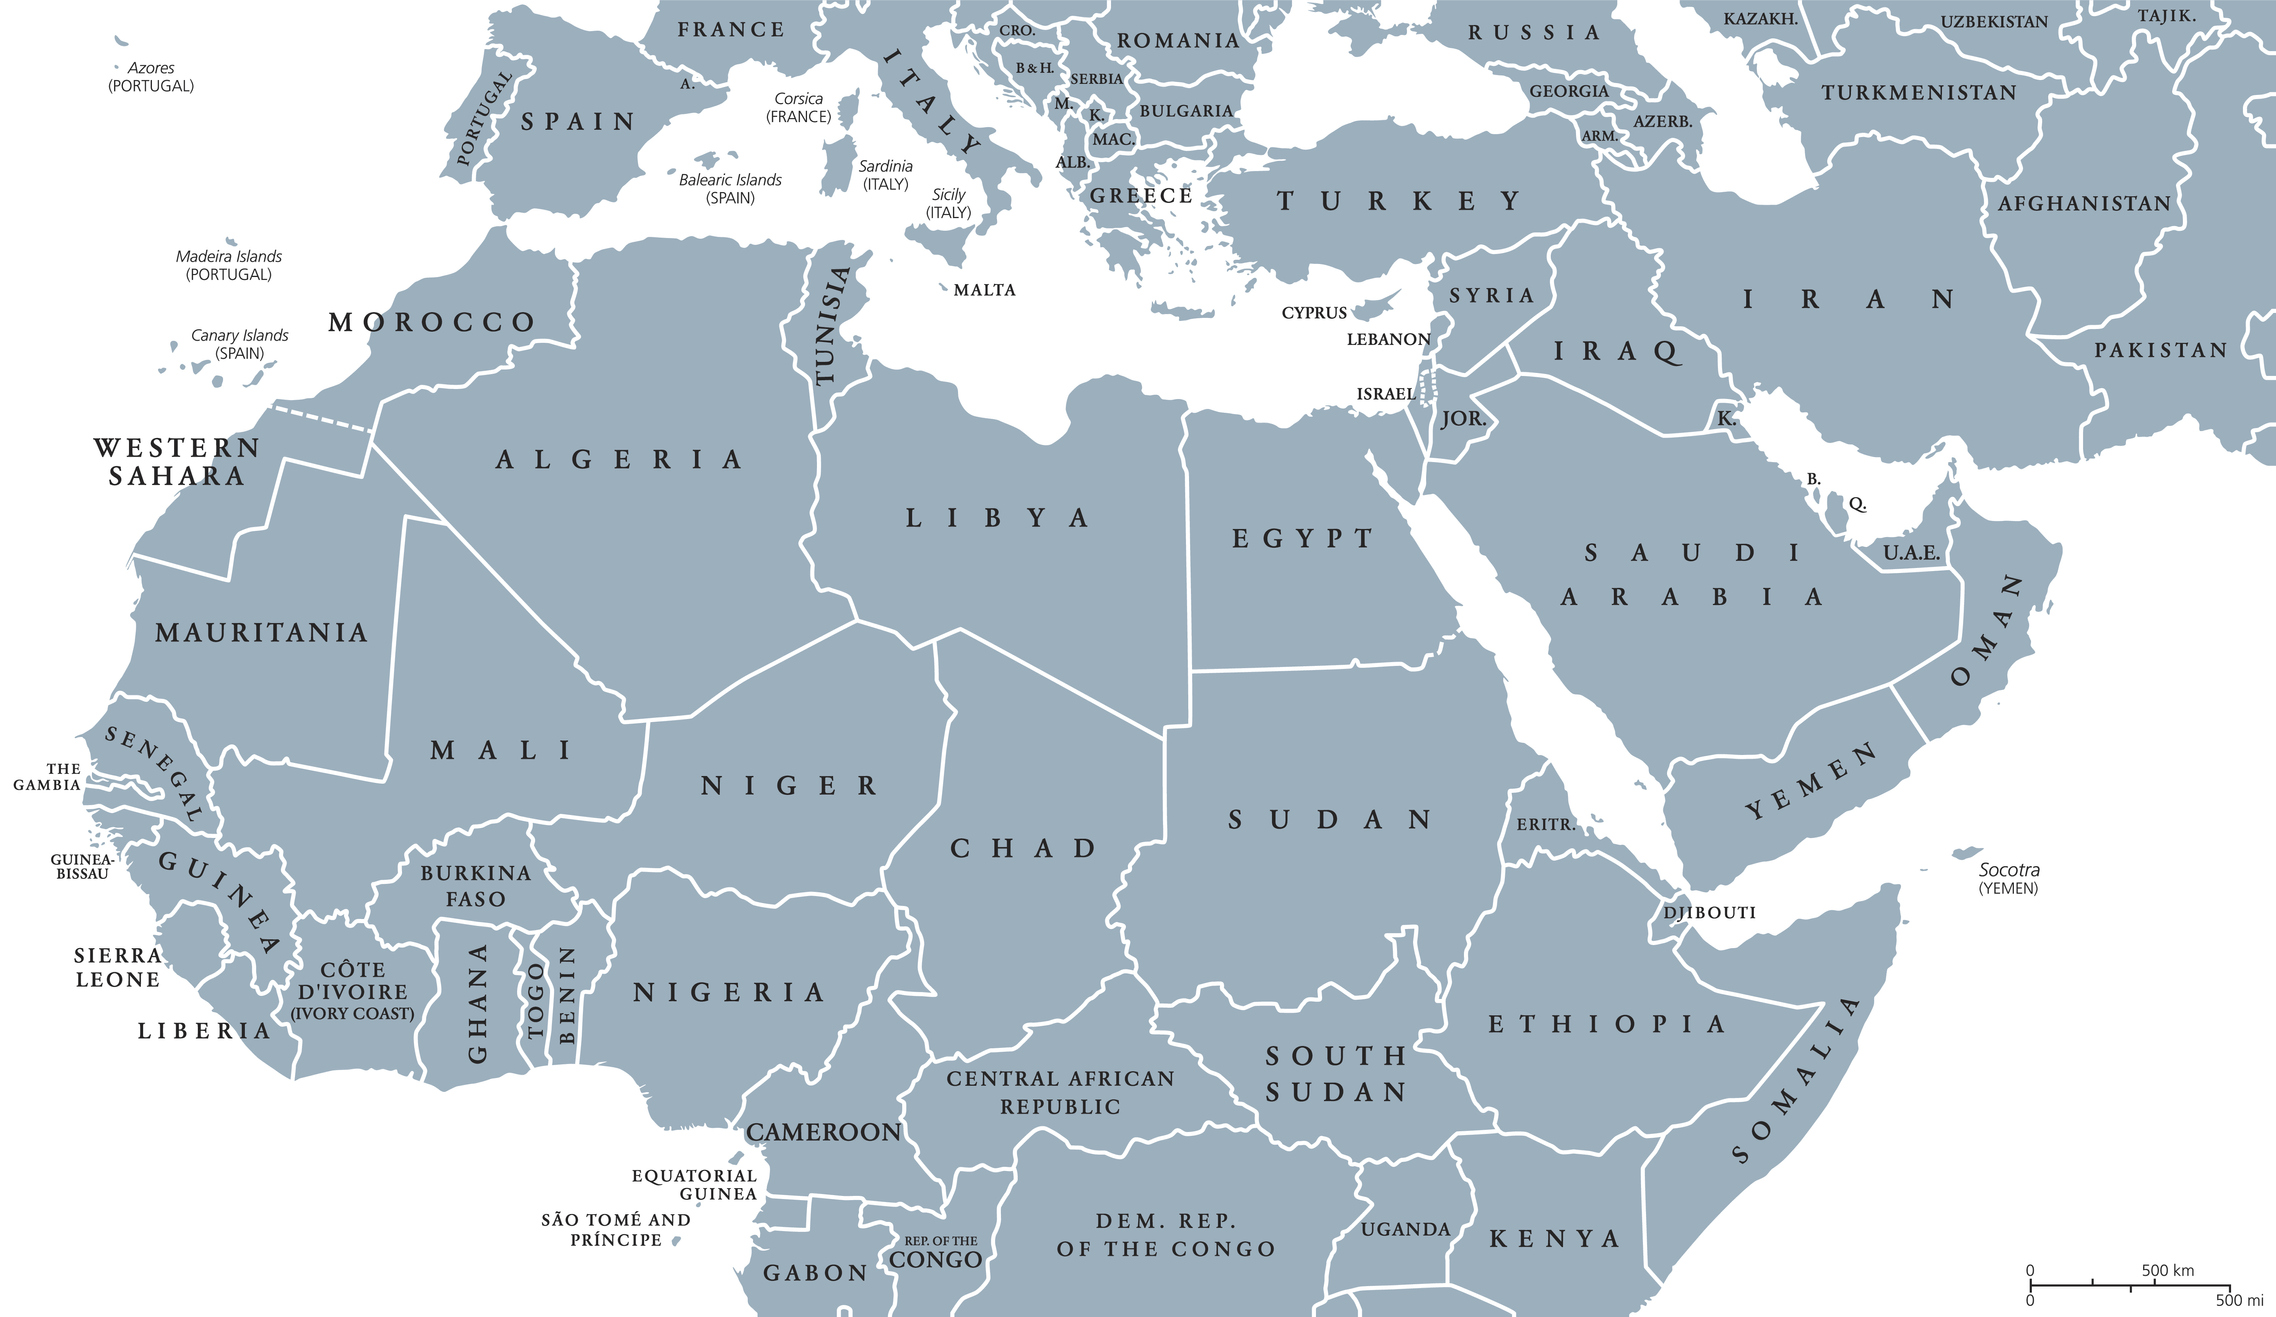 North Africa and Middle East political map with countries and borders.